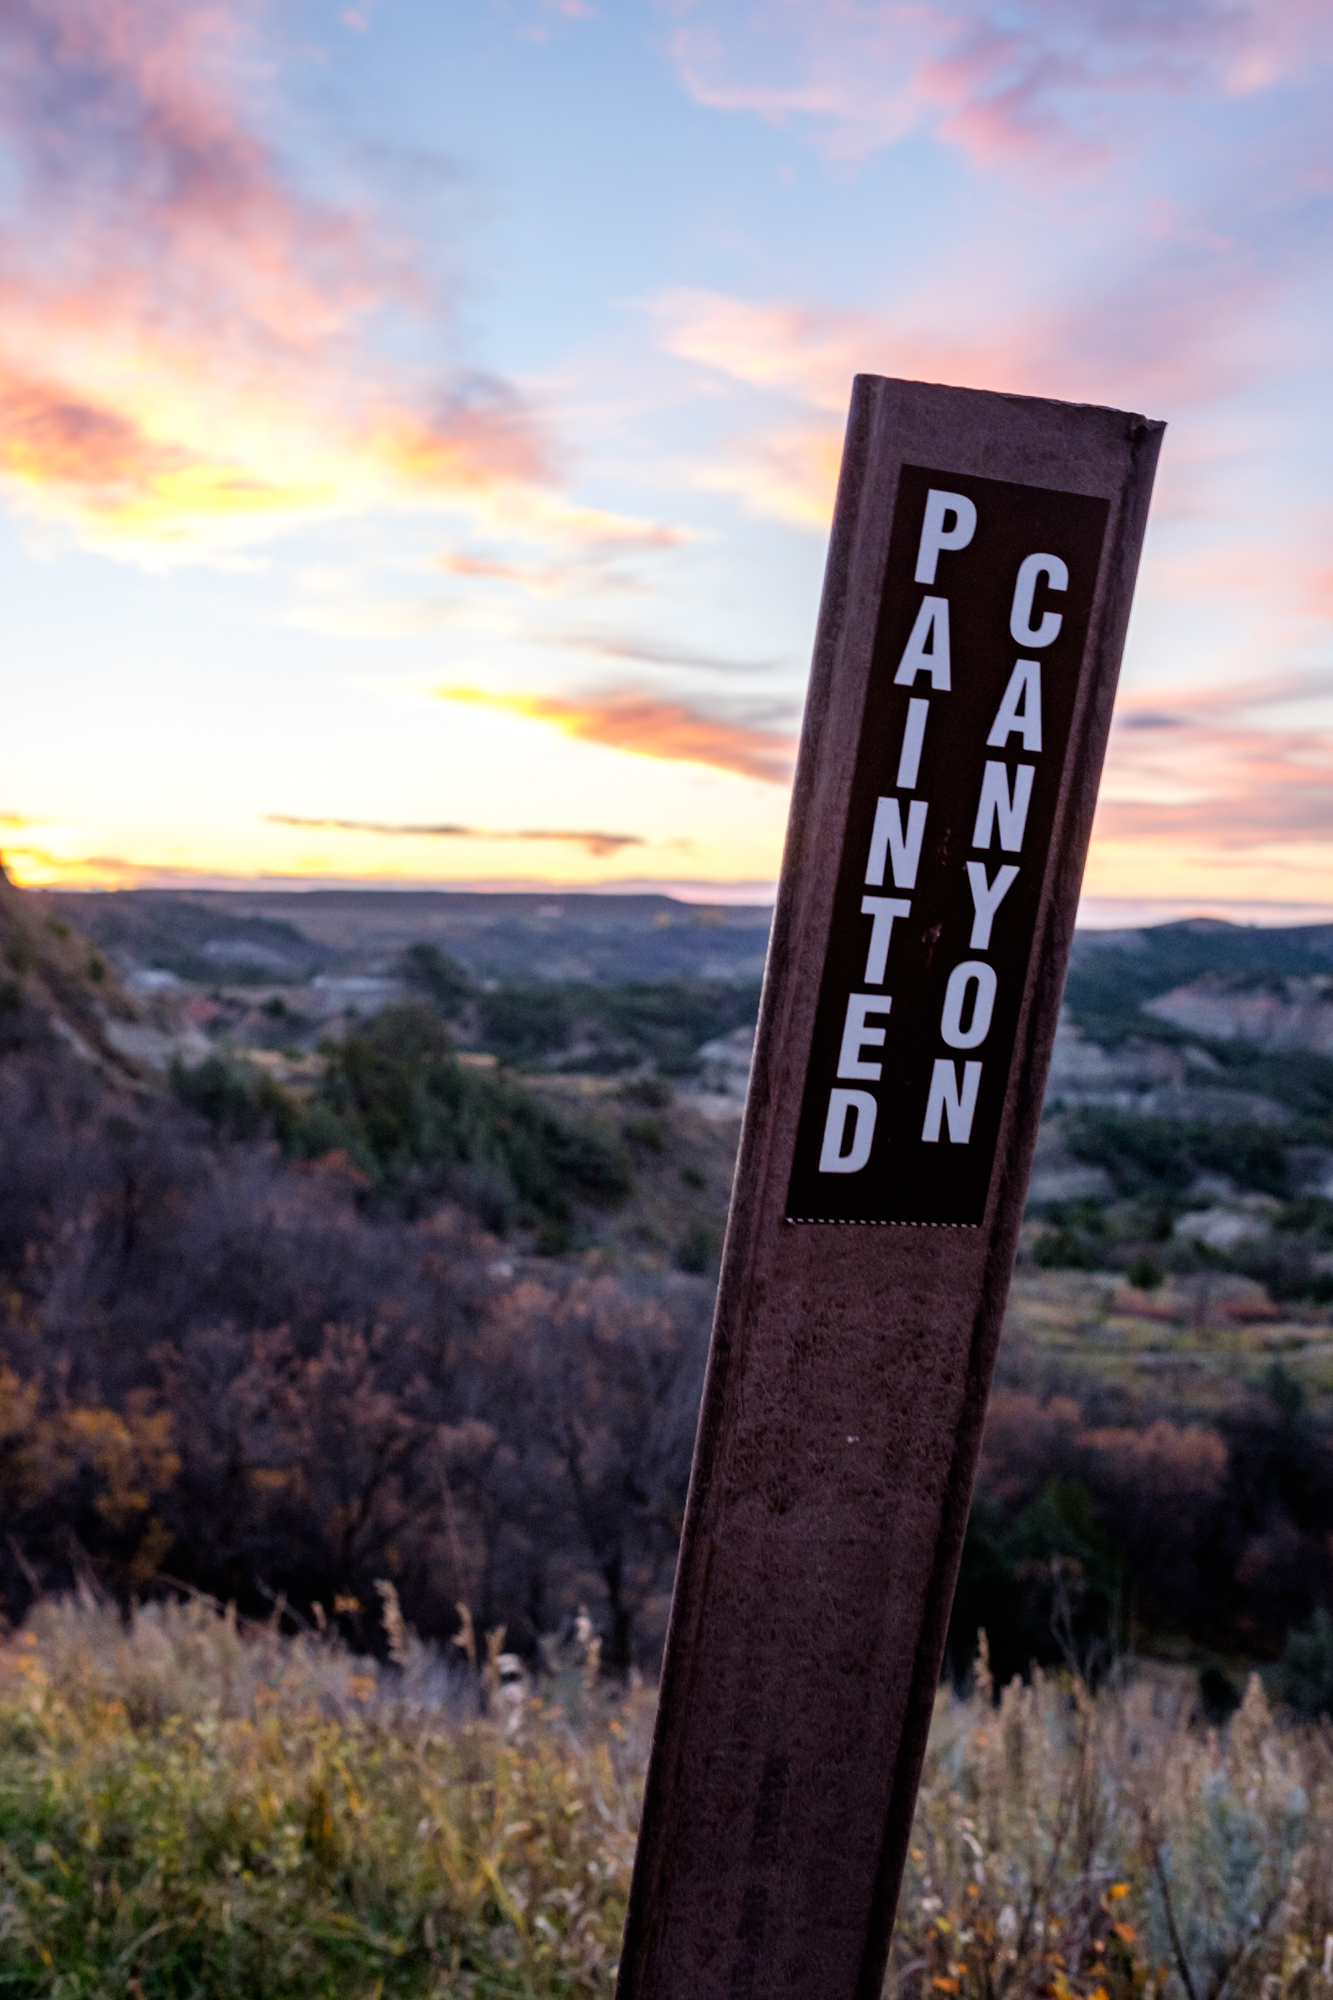 Our first stop was to witness a gorgeous sunset at Painted Canyon.